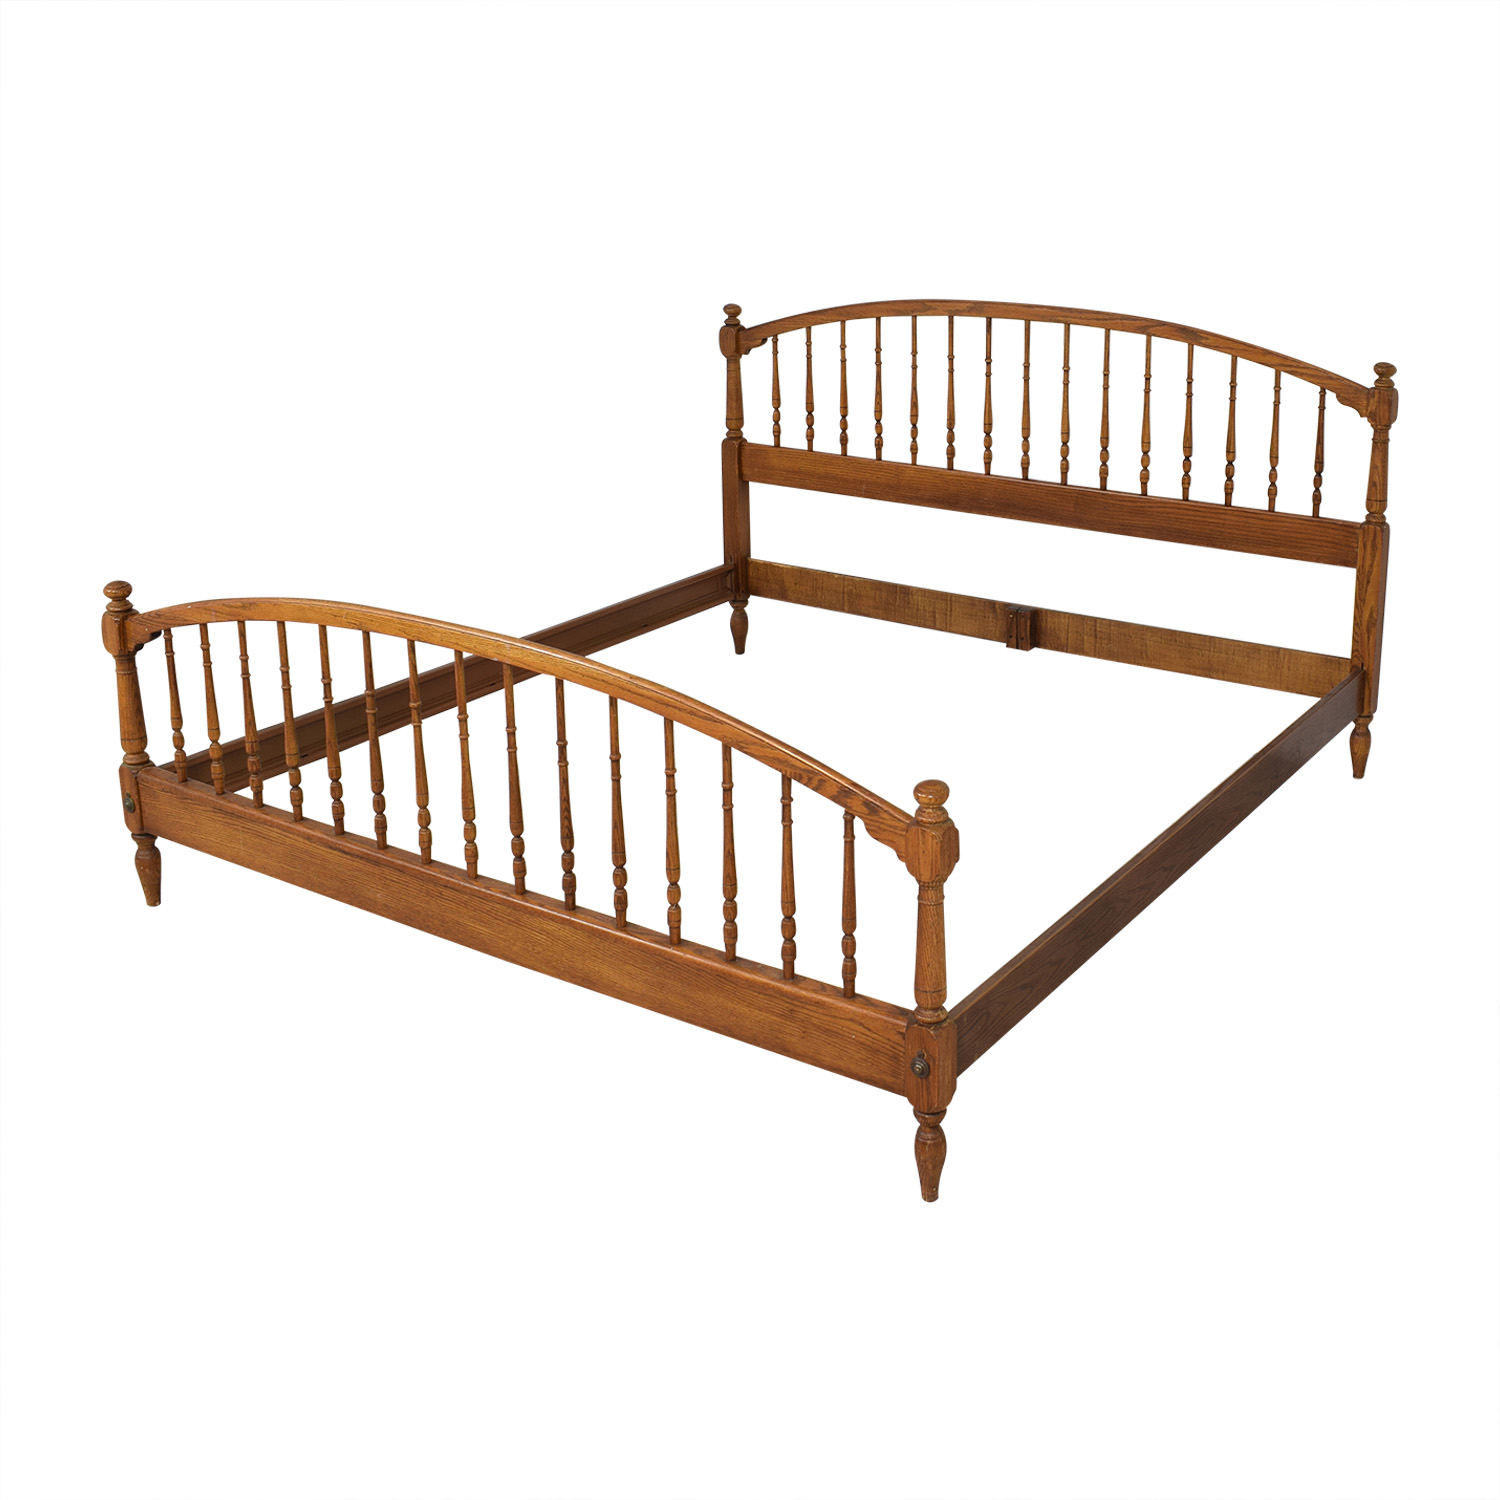 Knob Creek Spindle King Bed Frame / Beds